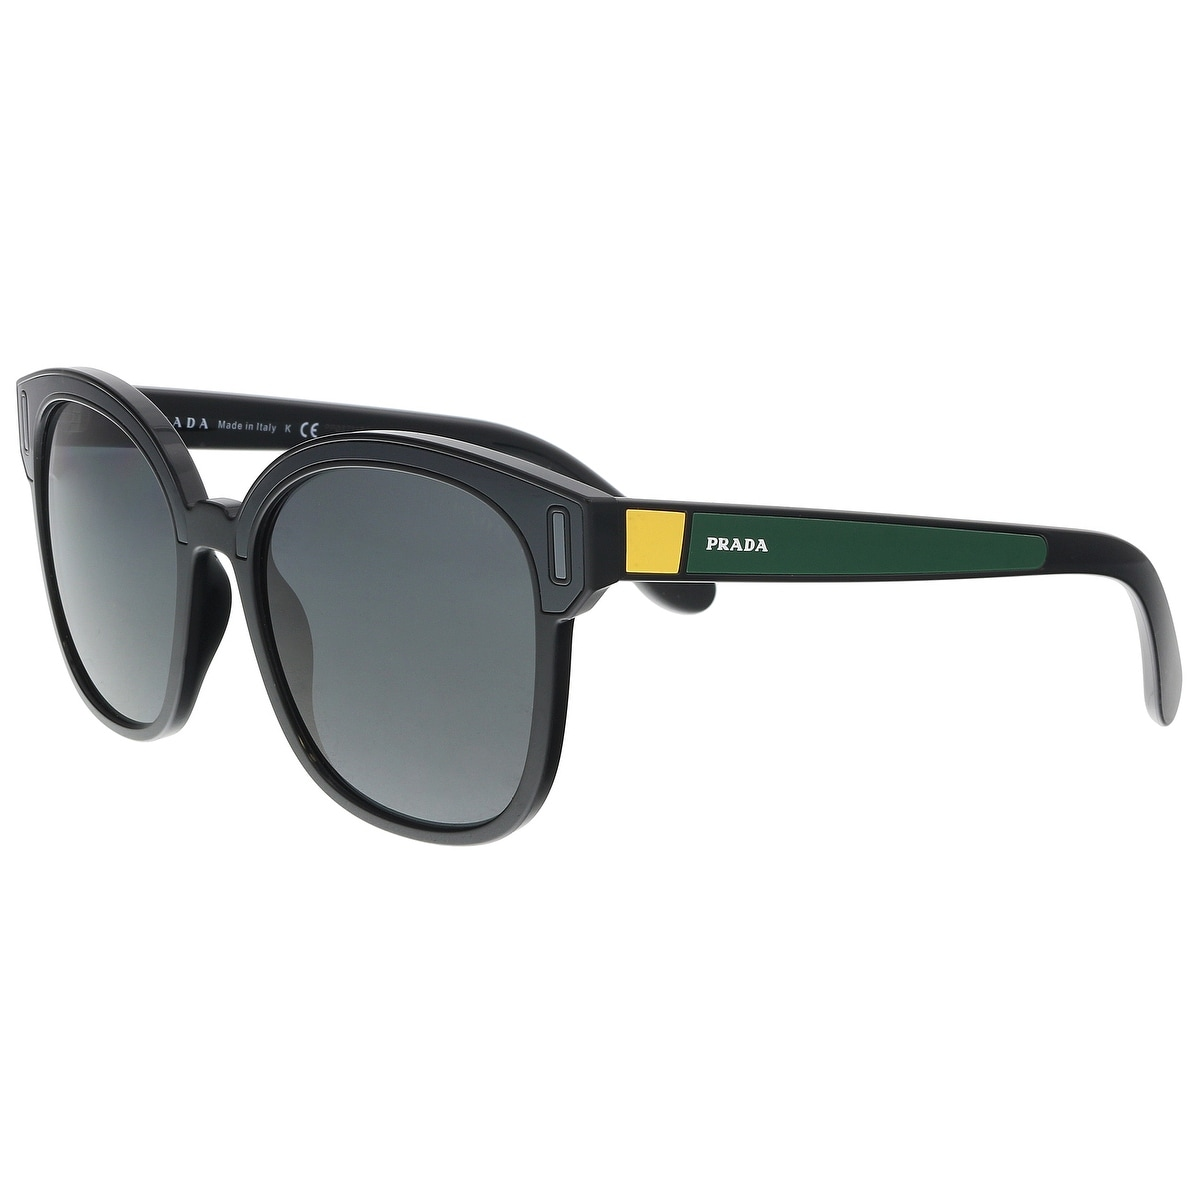 9dceffe1292 Prada Sunglasses | Shop our Best Clothing & Shoes Deals Online at Overstock